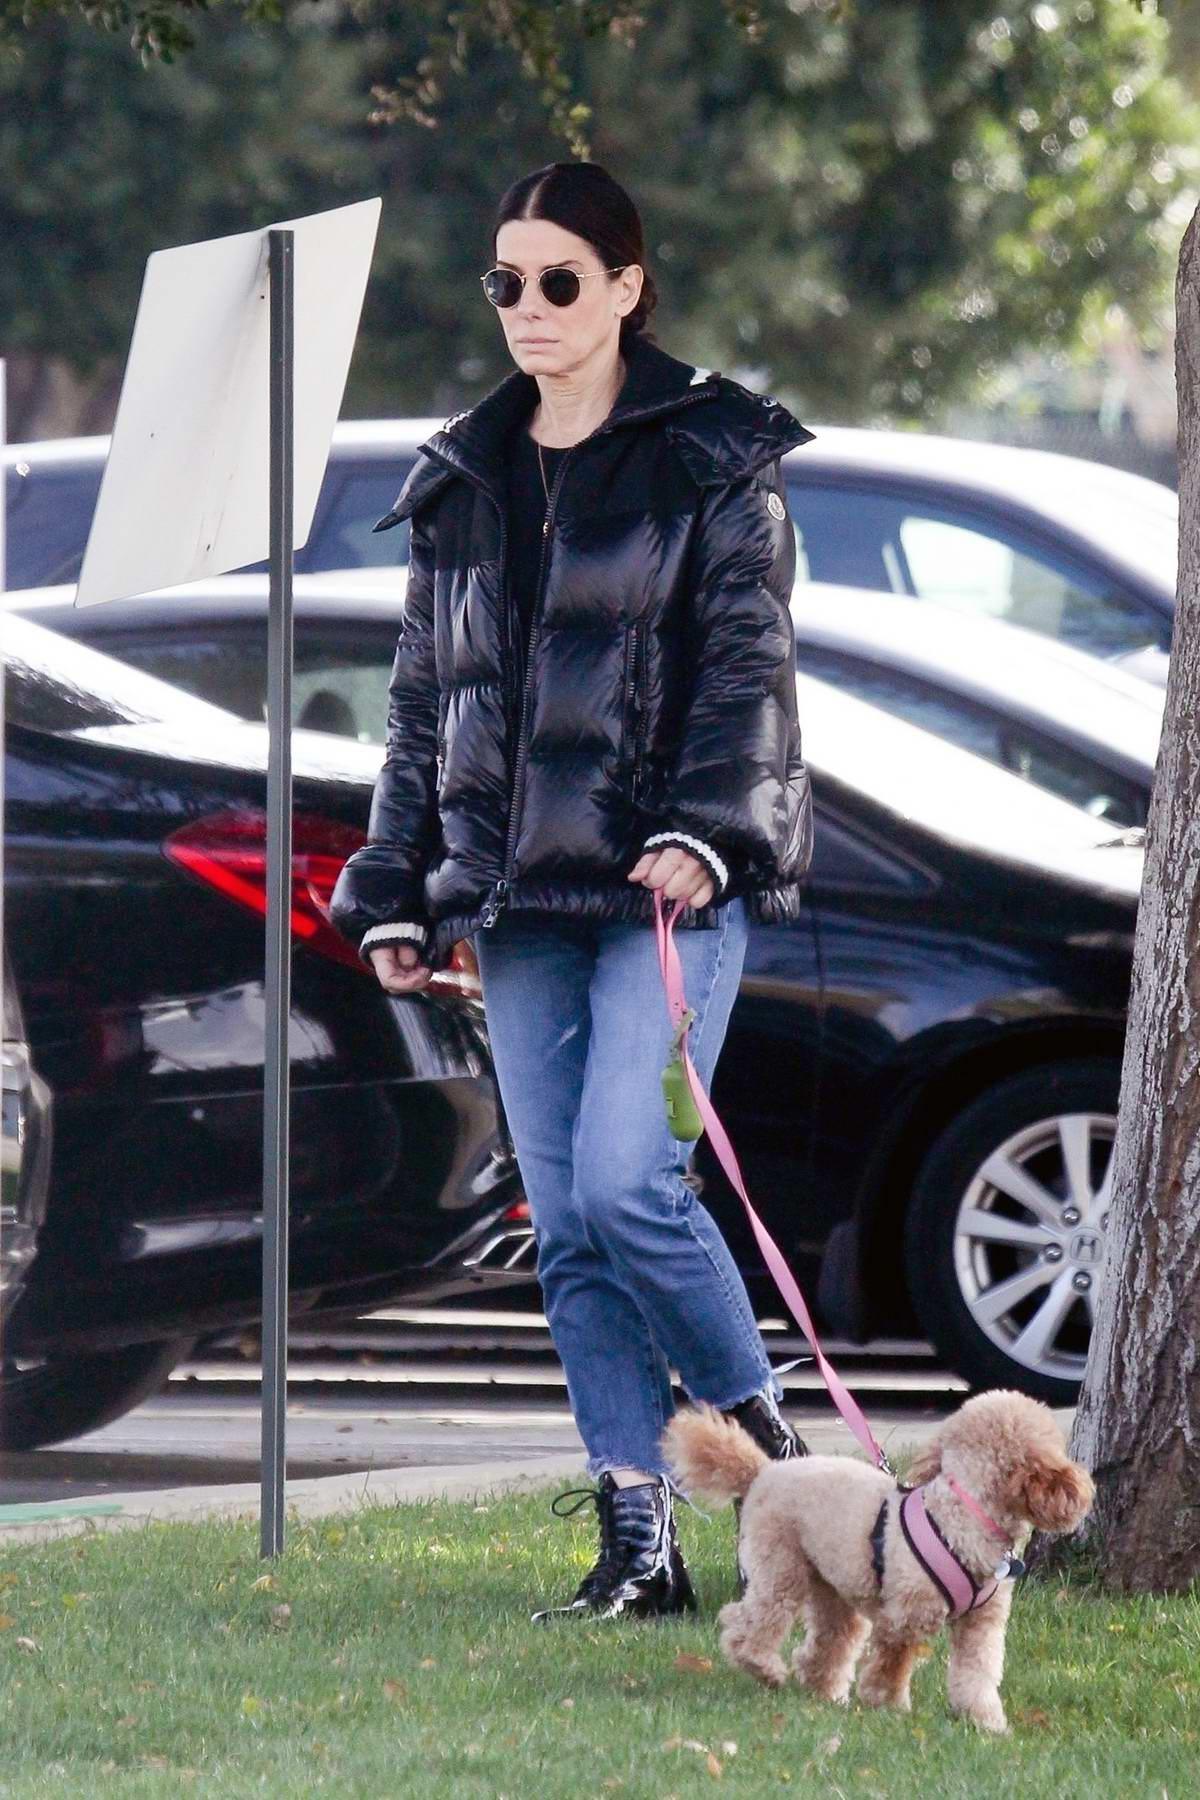 Sandra Bullock takes her pooch out for an afternoon walk in Van Nuys, California